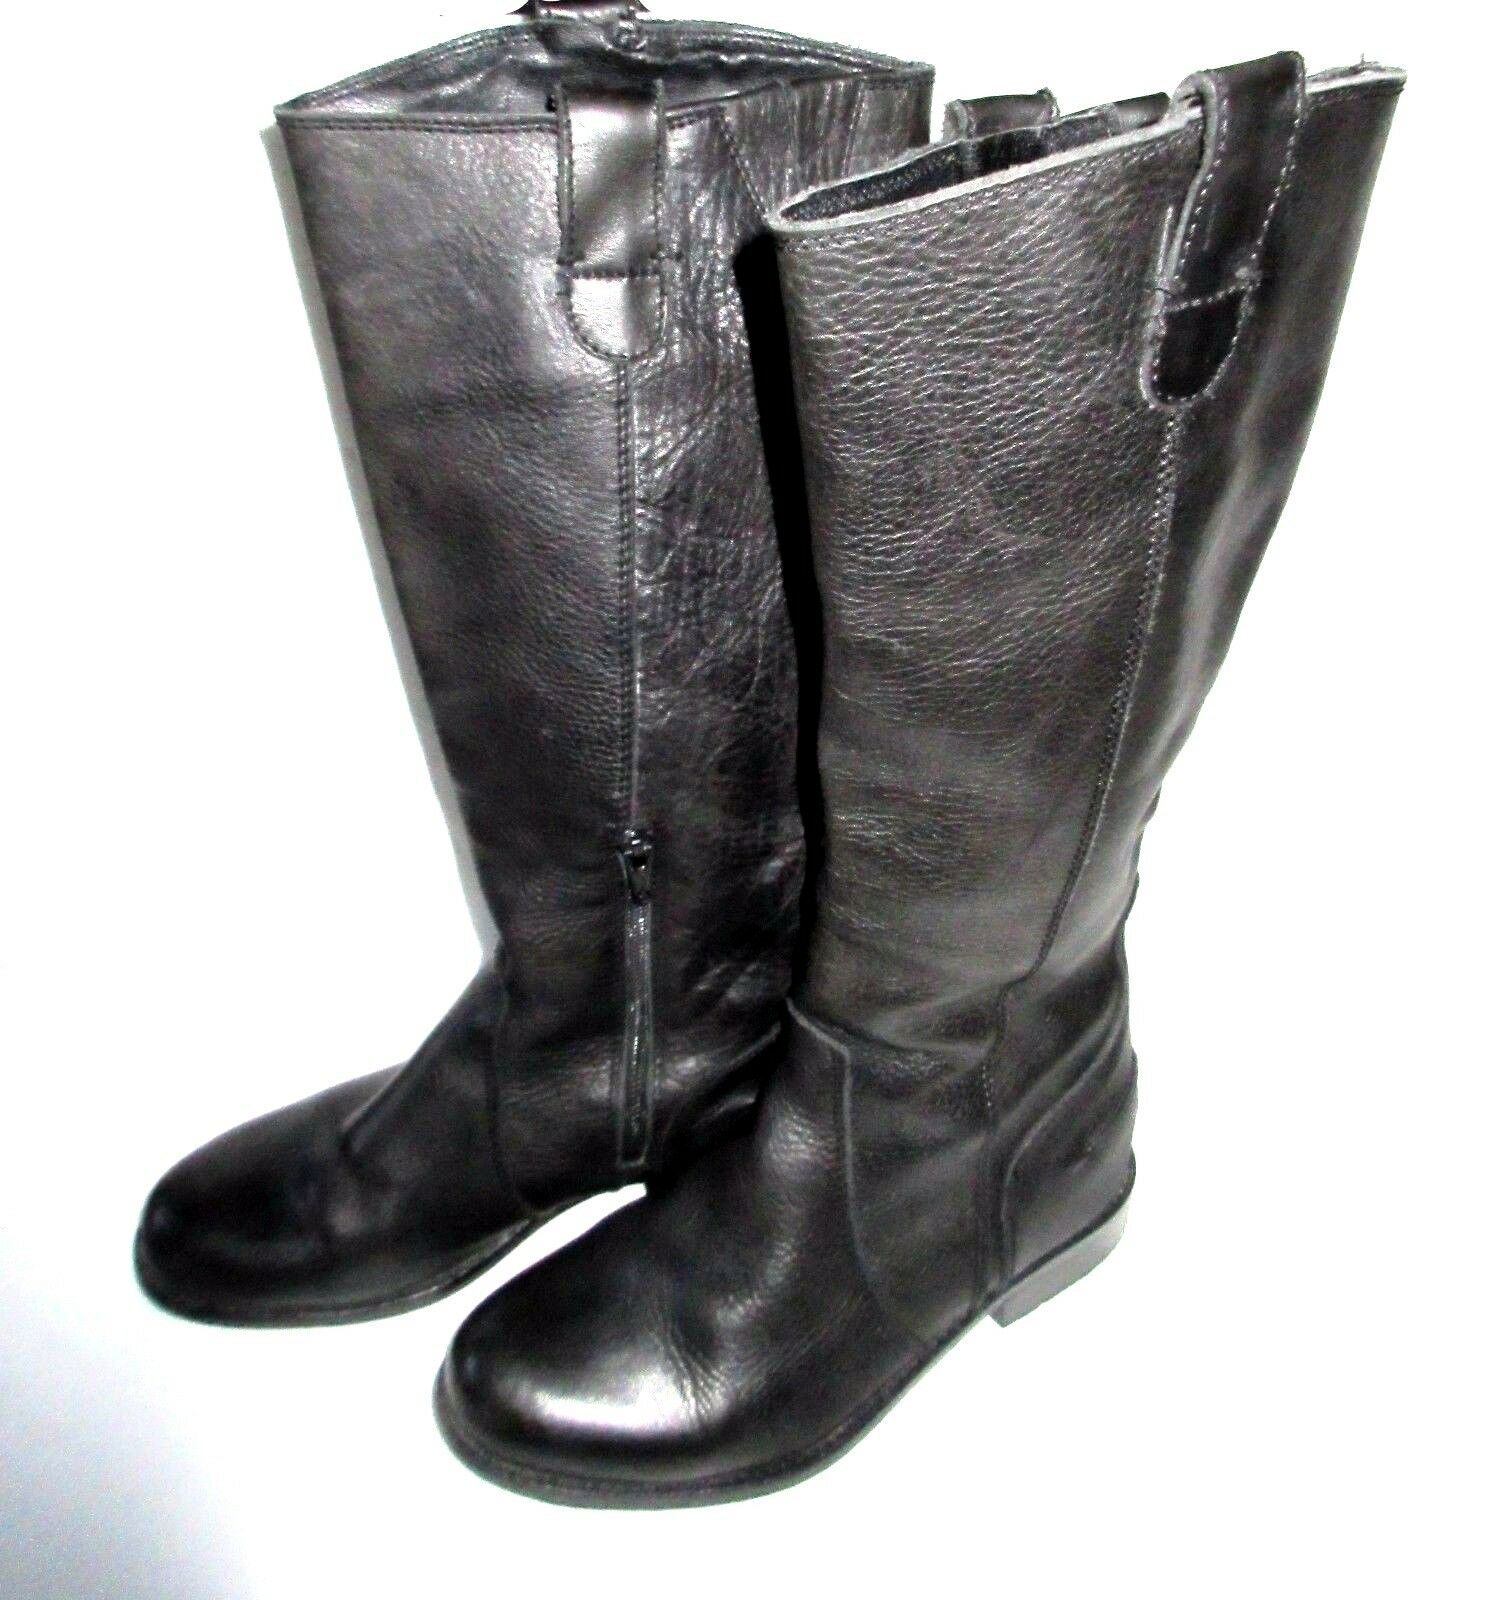 Women's Riddle Mid Calf Black Leather Boots  Size 6M